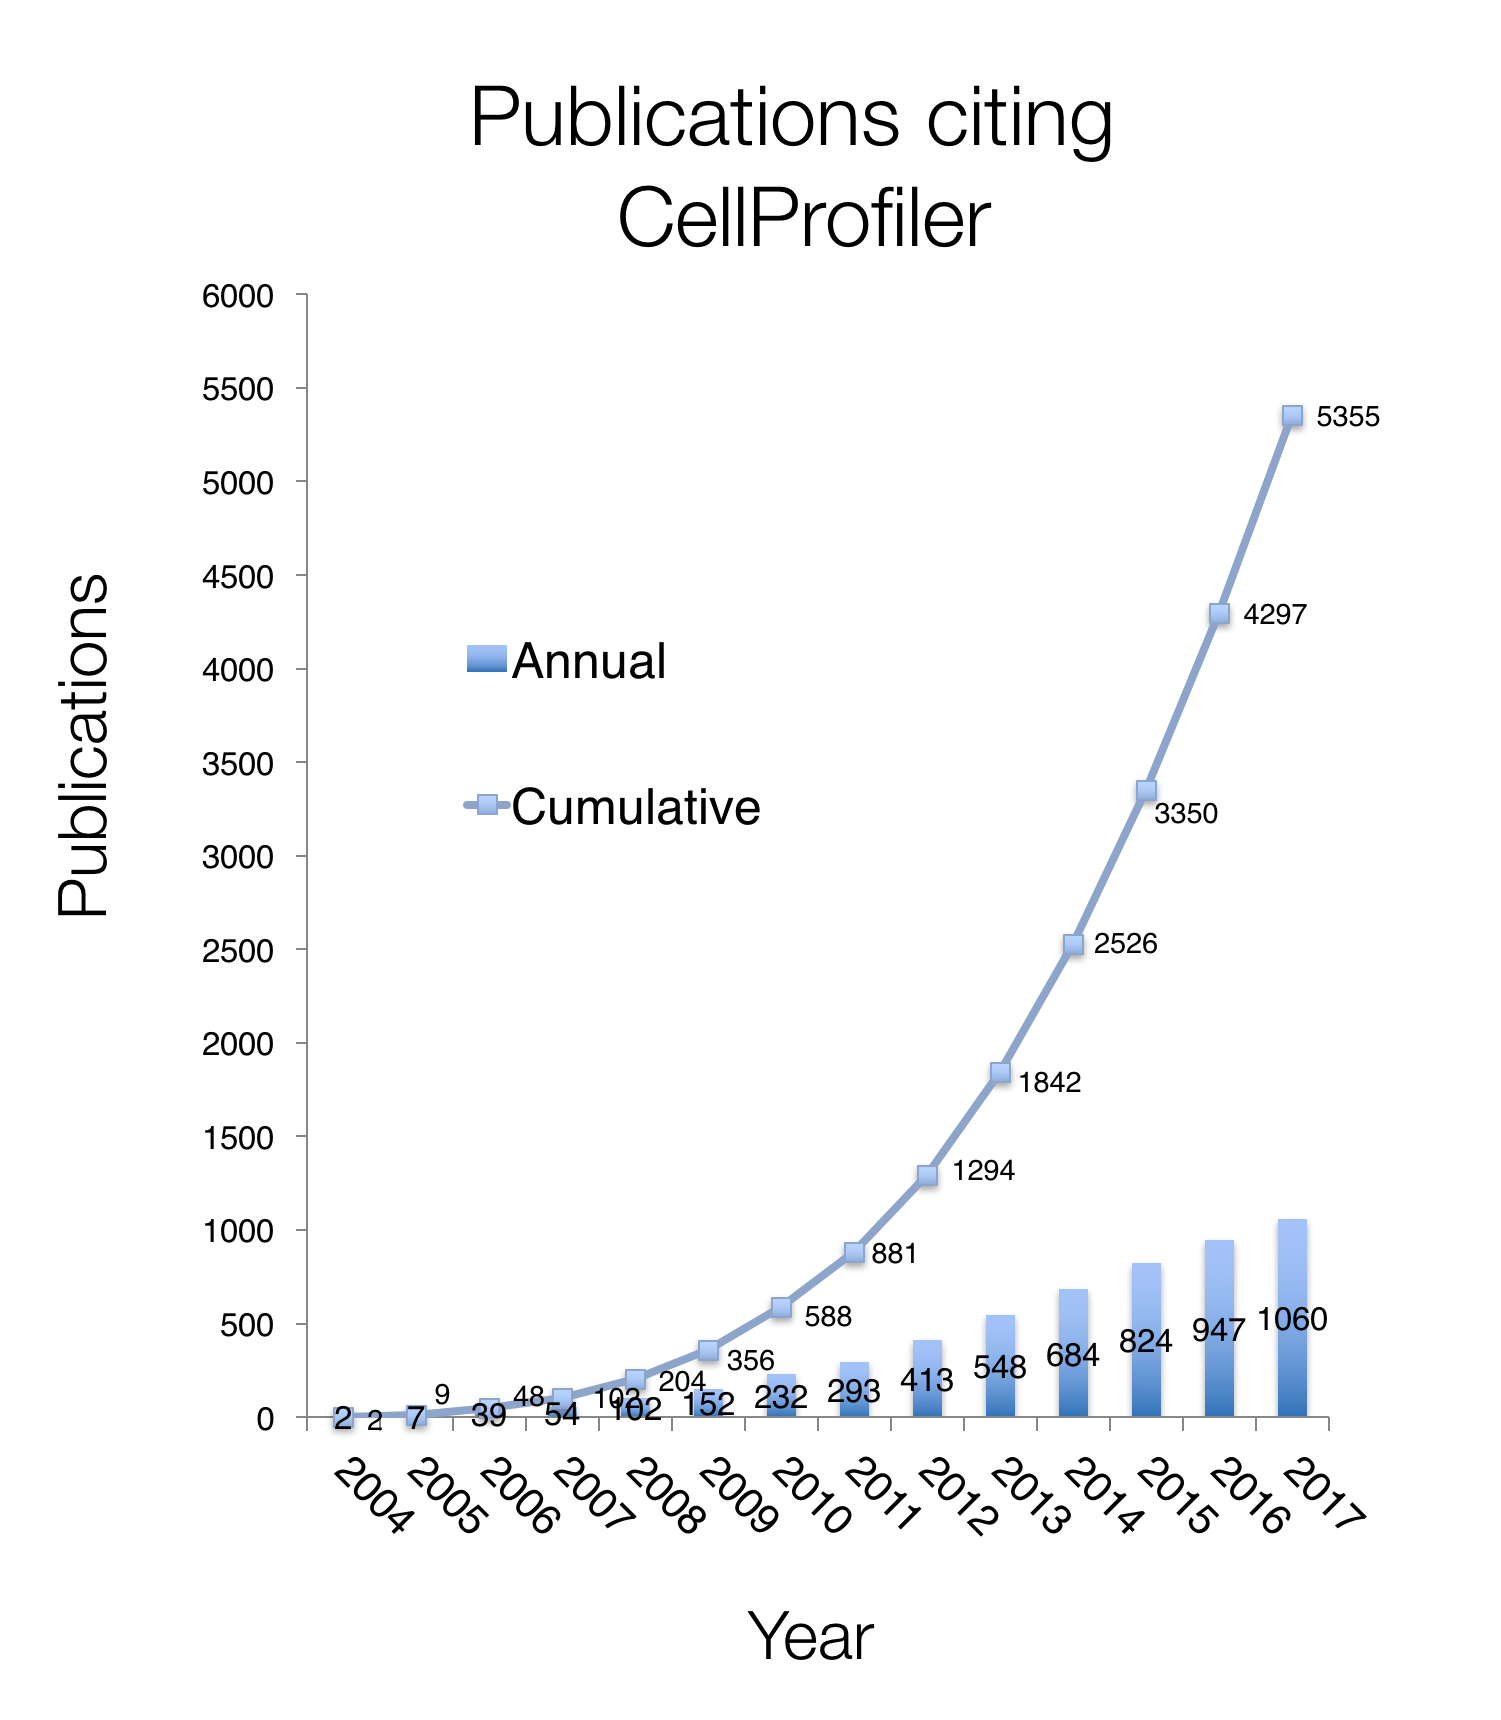 CellProfiler citation publication